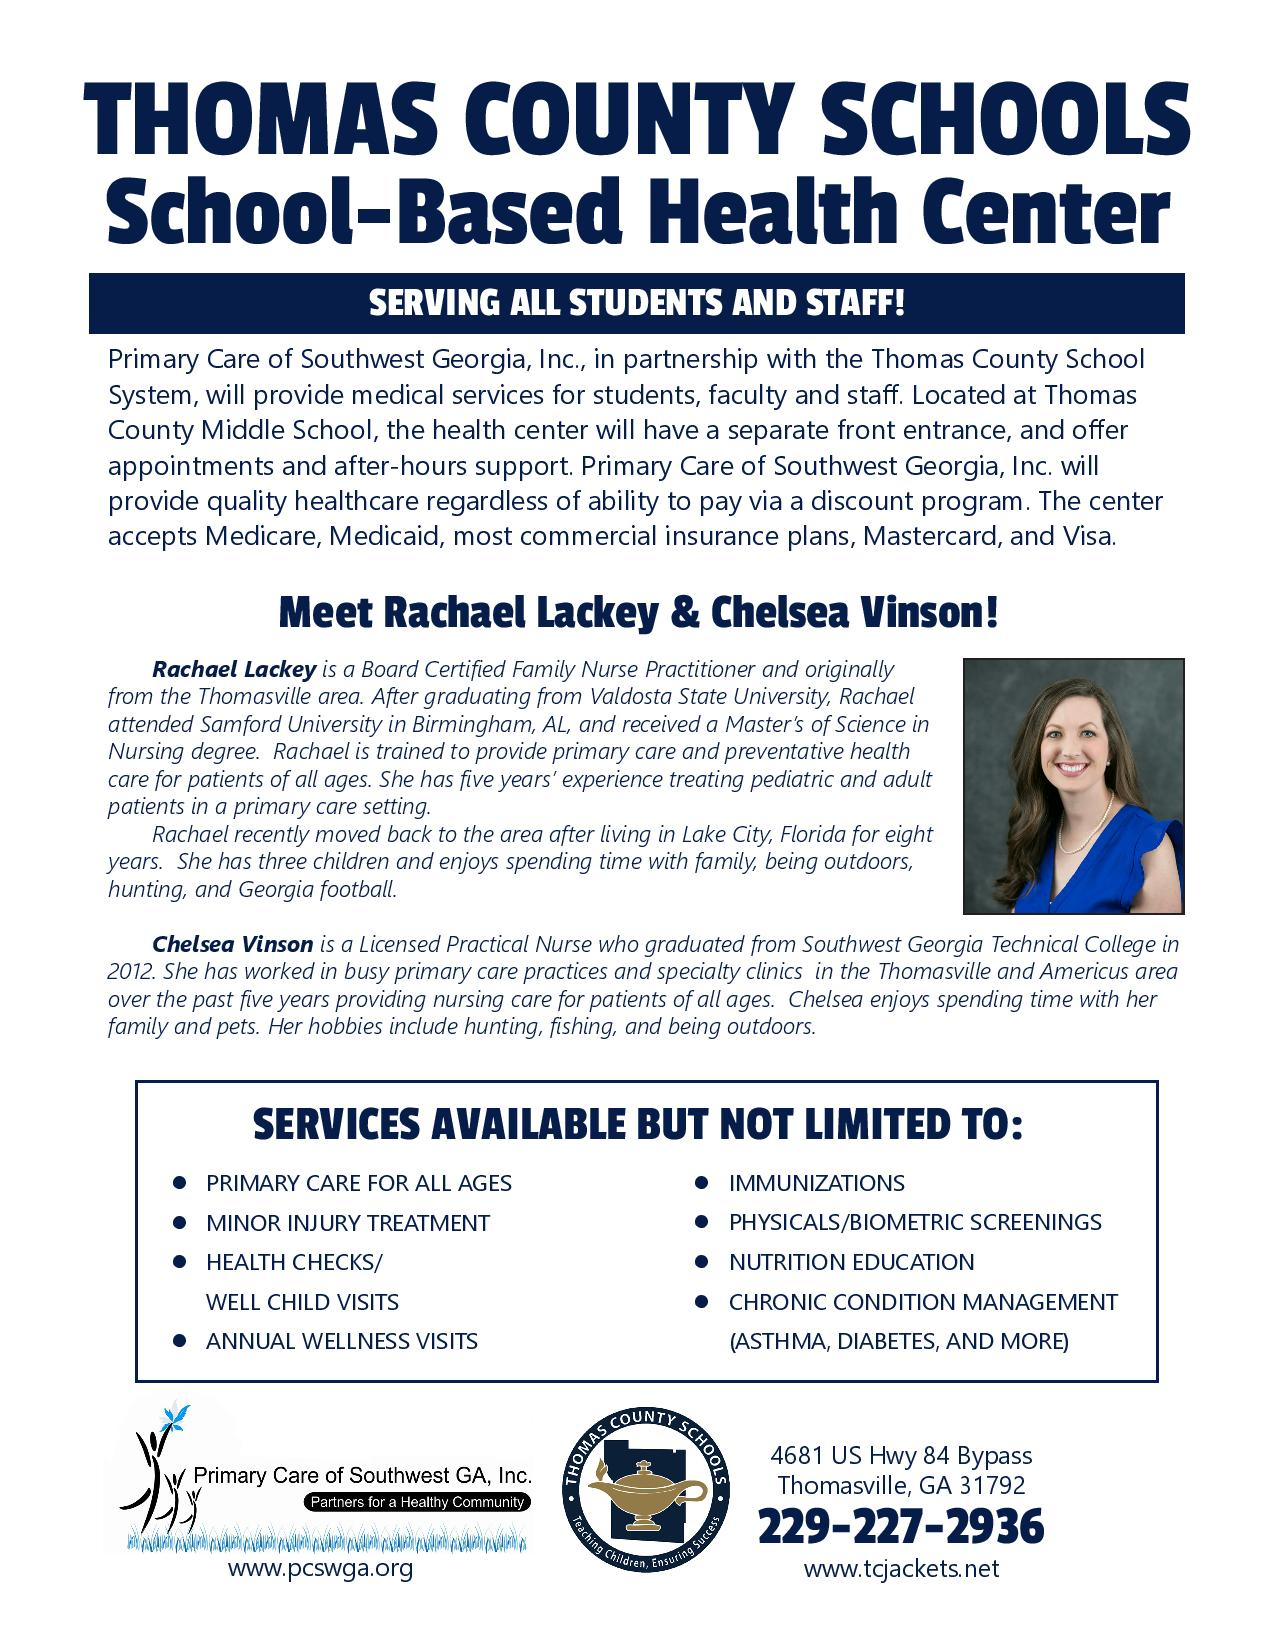 School-based health center flyer